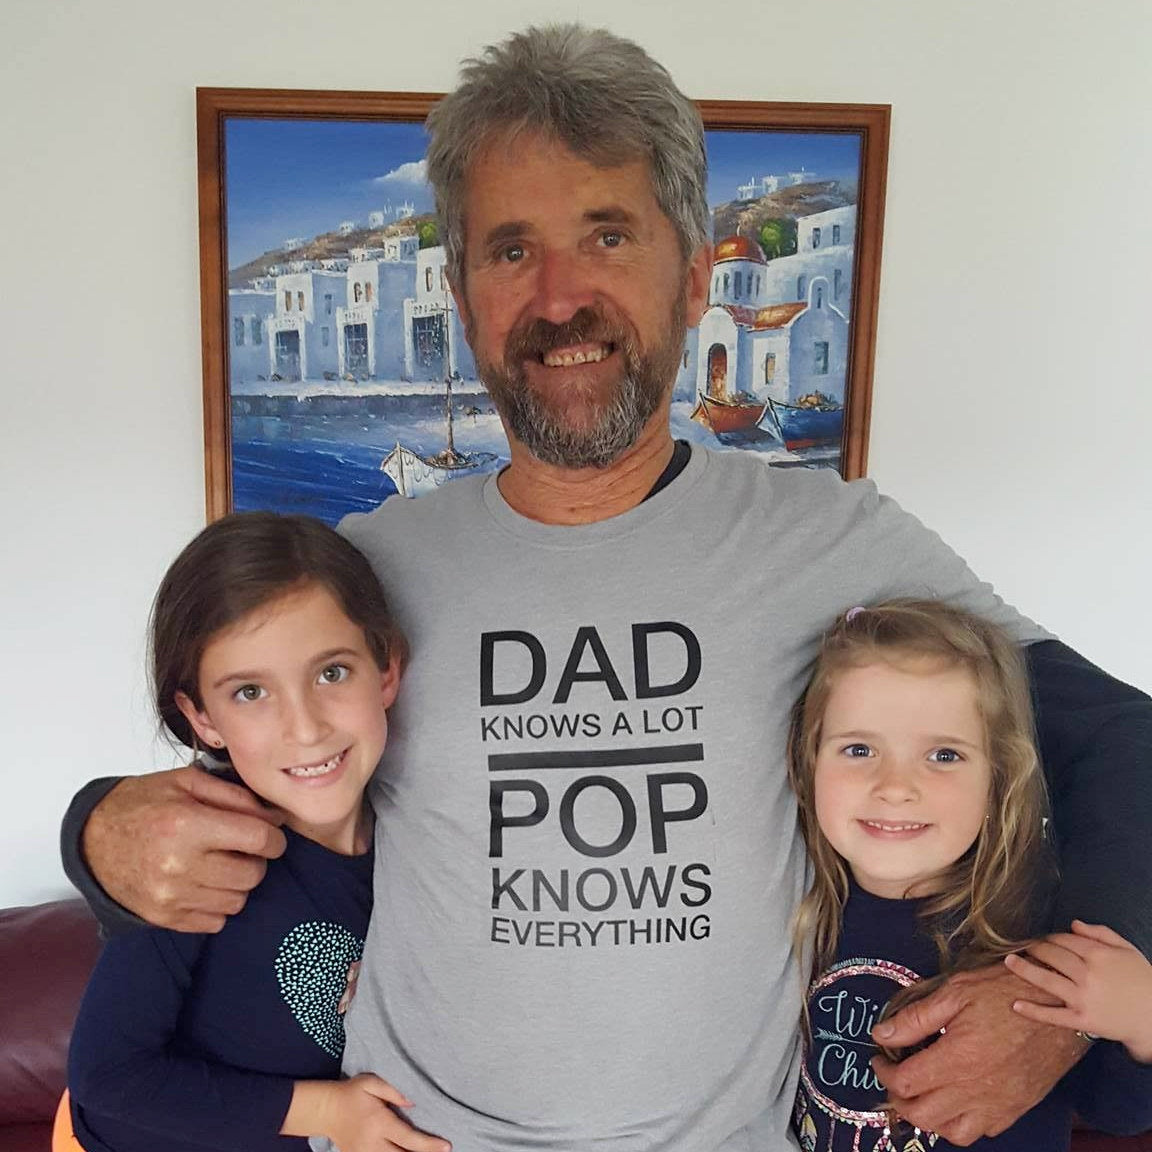 Dad Knows A Lot Pop Knows Everything Men's T-Shirt, Funny Mens Shirt, Father's Day Gift, Dad Jokes, Men's Humour TShirt, M-GY-SS-T